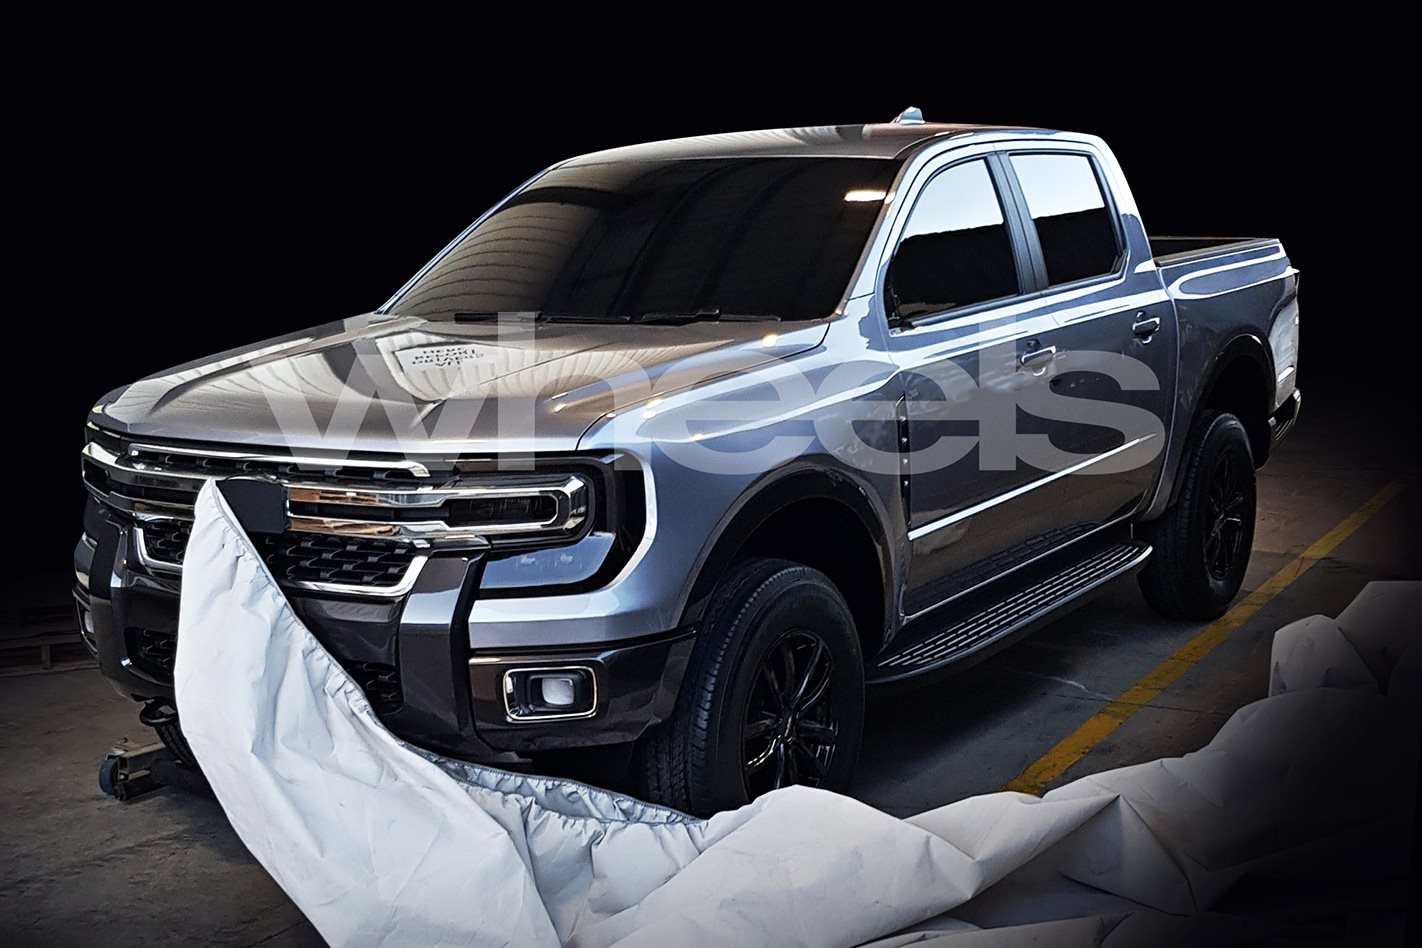 2021 Ford Ranger: this is definitely it